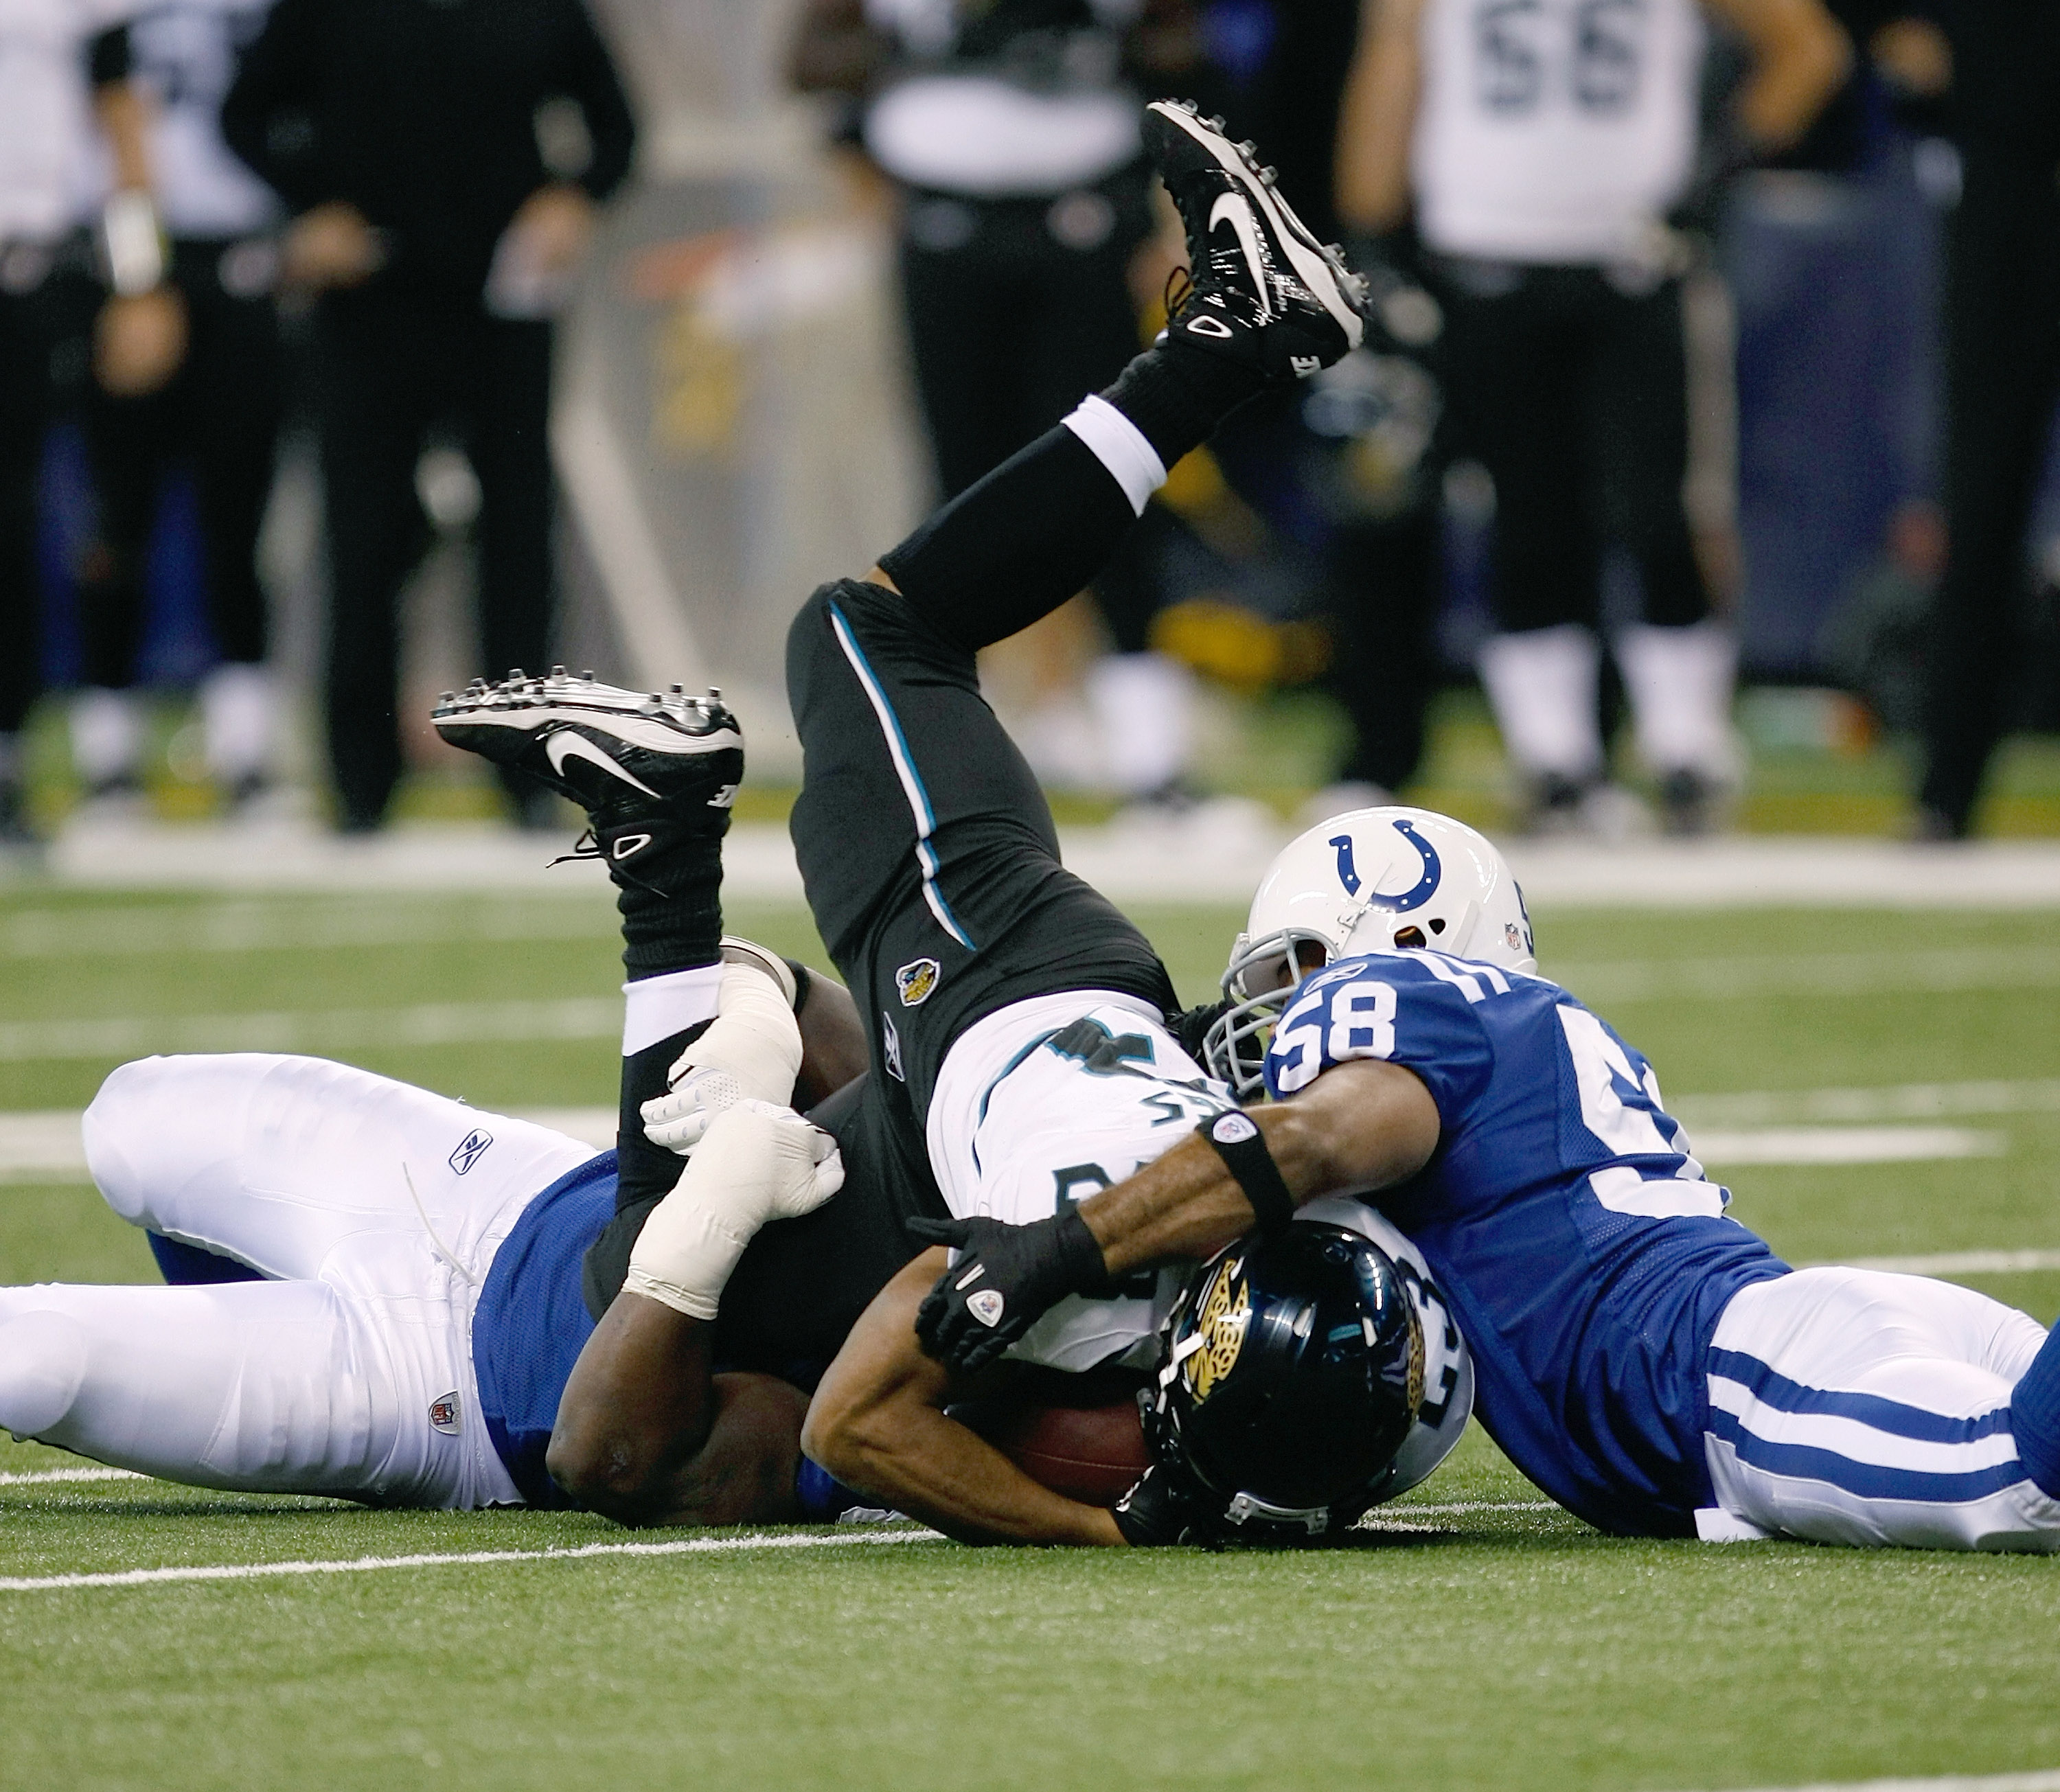 INDIANAPOLIS, IN - DECEMBER 19: Maurice Jones-Drew #32 of the Jacksonville Jaguars is upended by Gary Brackett #58 of the Indianapolis Colts at Lucas Oil Stadium on December 19, 2010 in Indianapolis, Indiana.  (Photo by Scott Boehm/Getty Images)